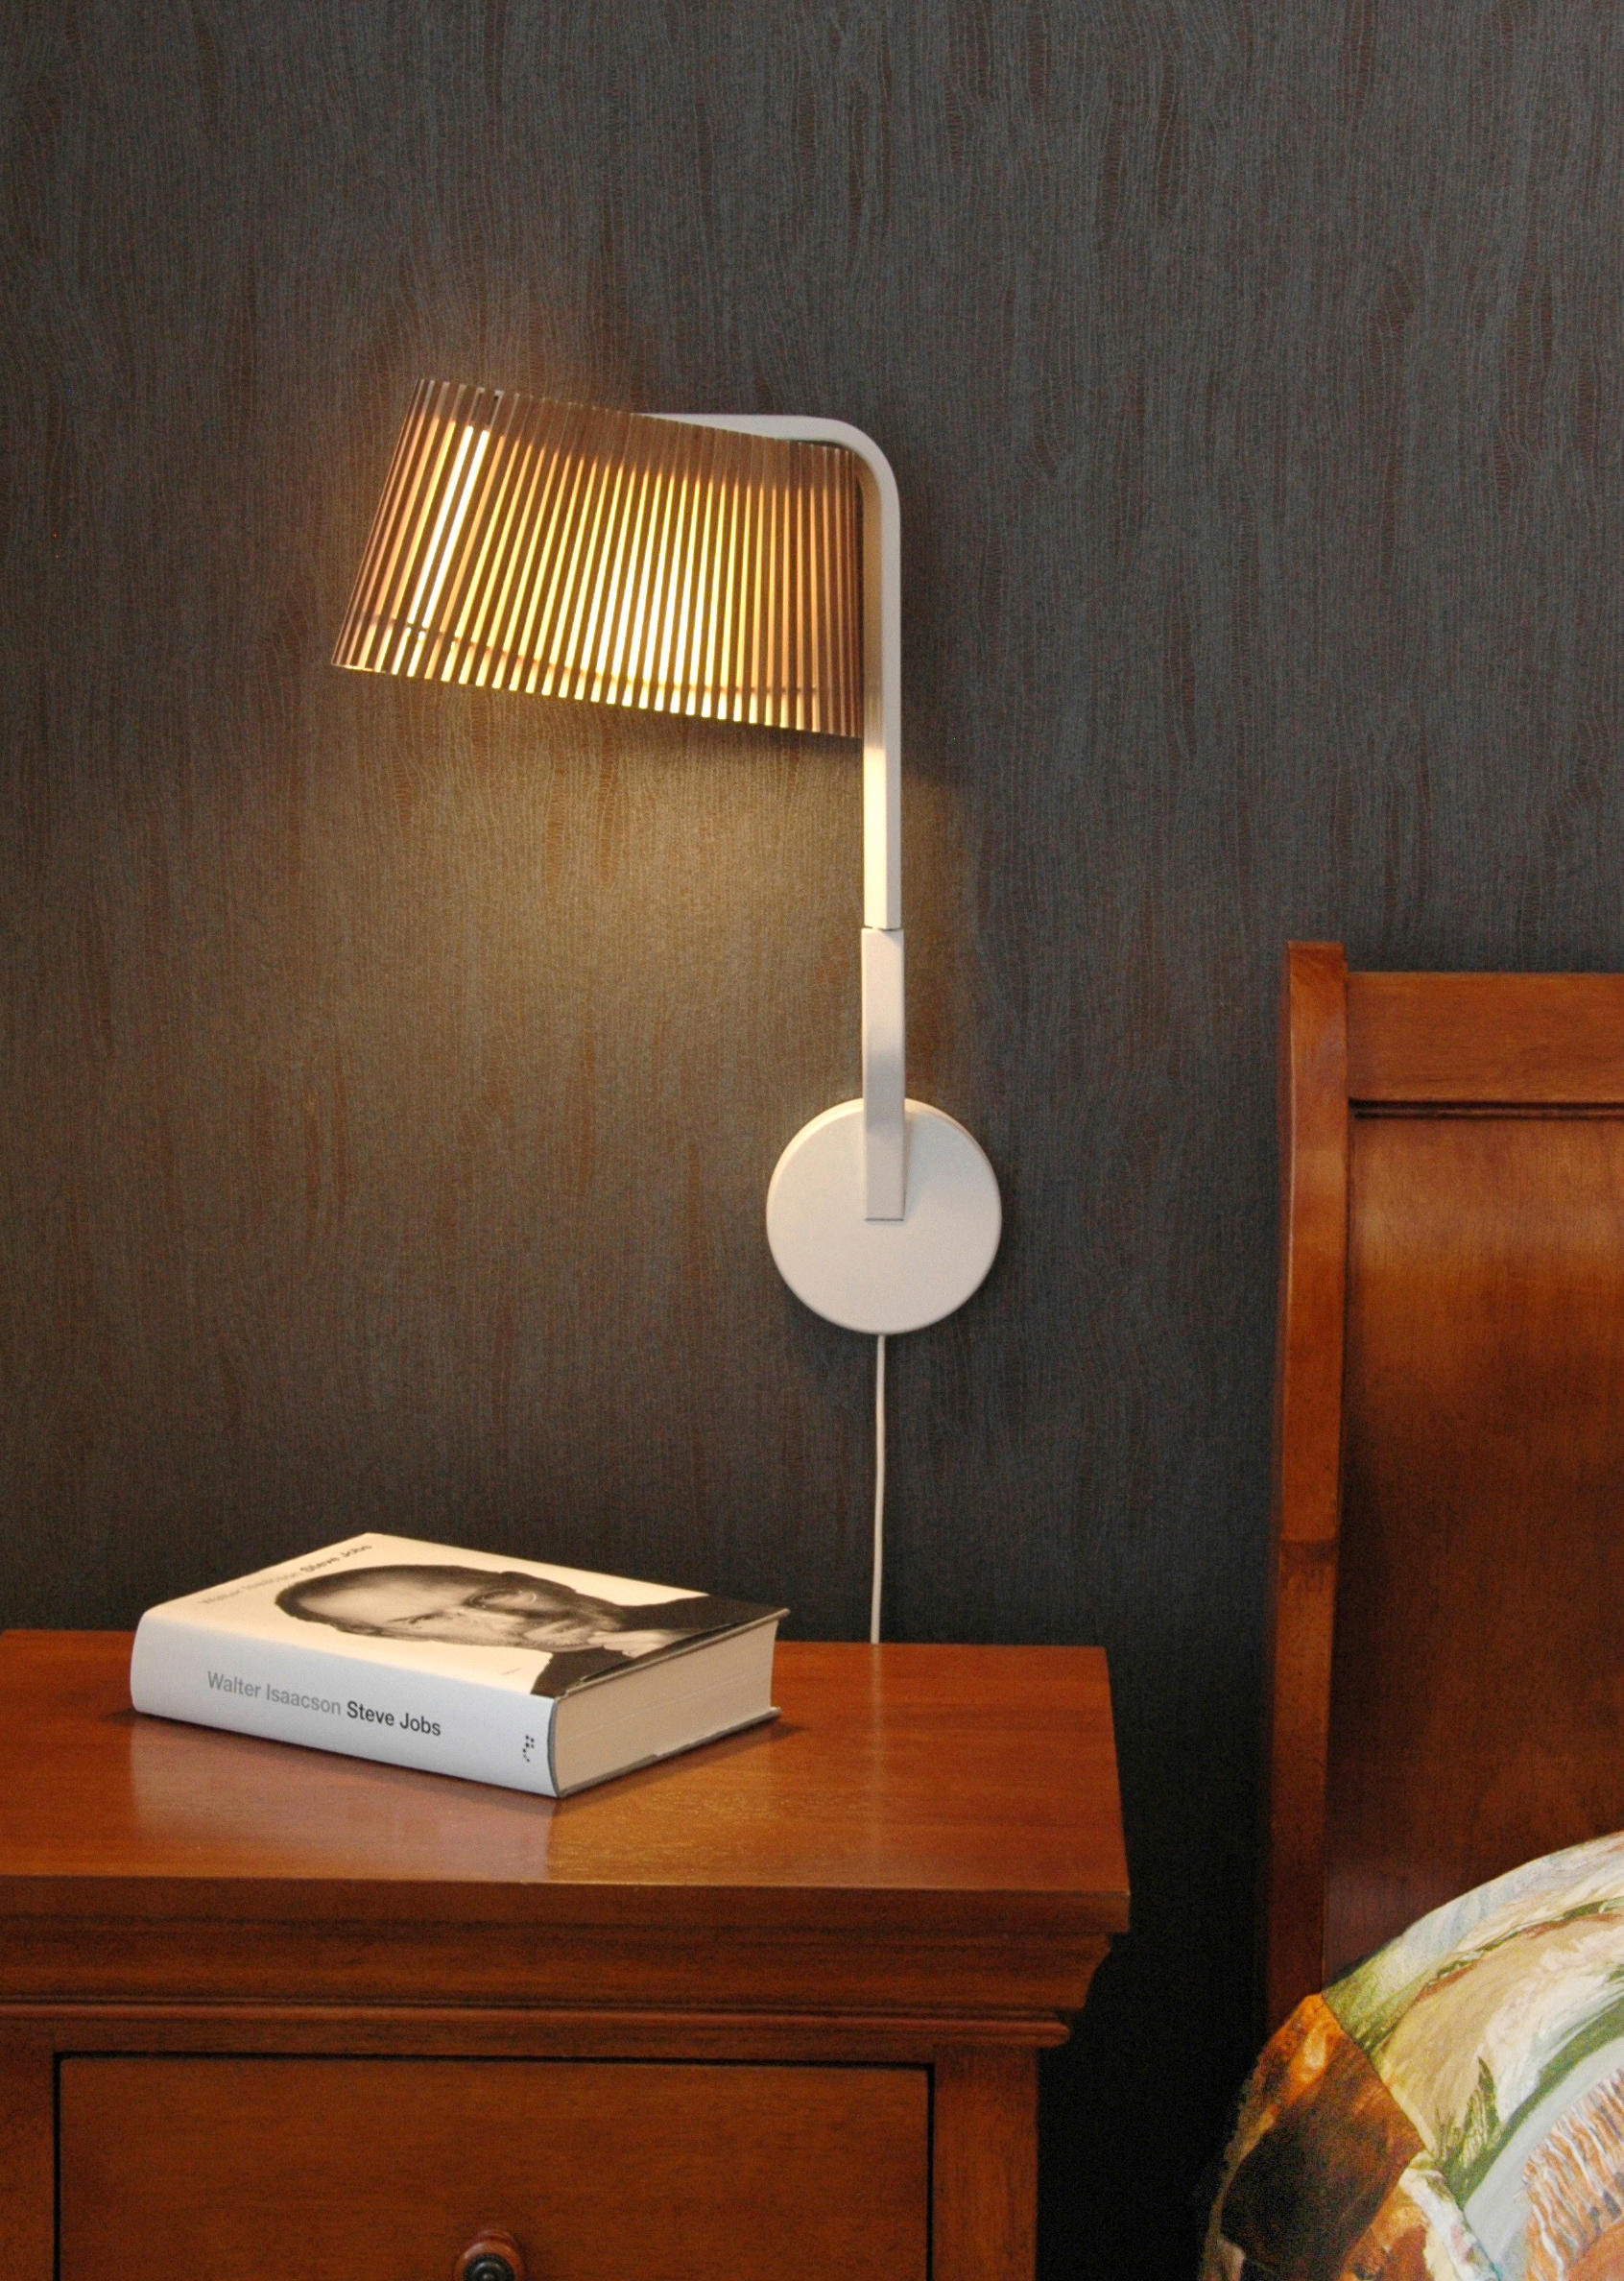 Applique murale Liseuse Led au design scandinave Owalo 7030 en bois naturel par Secto Design